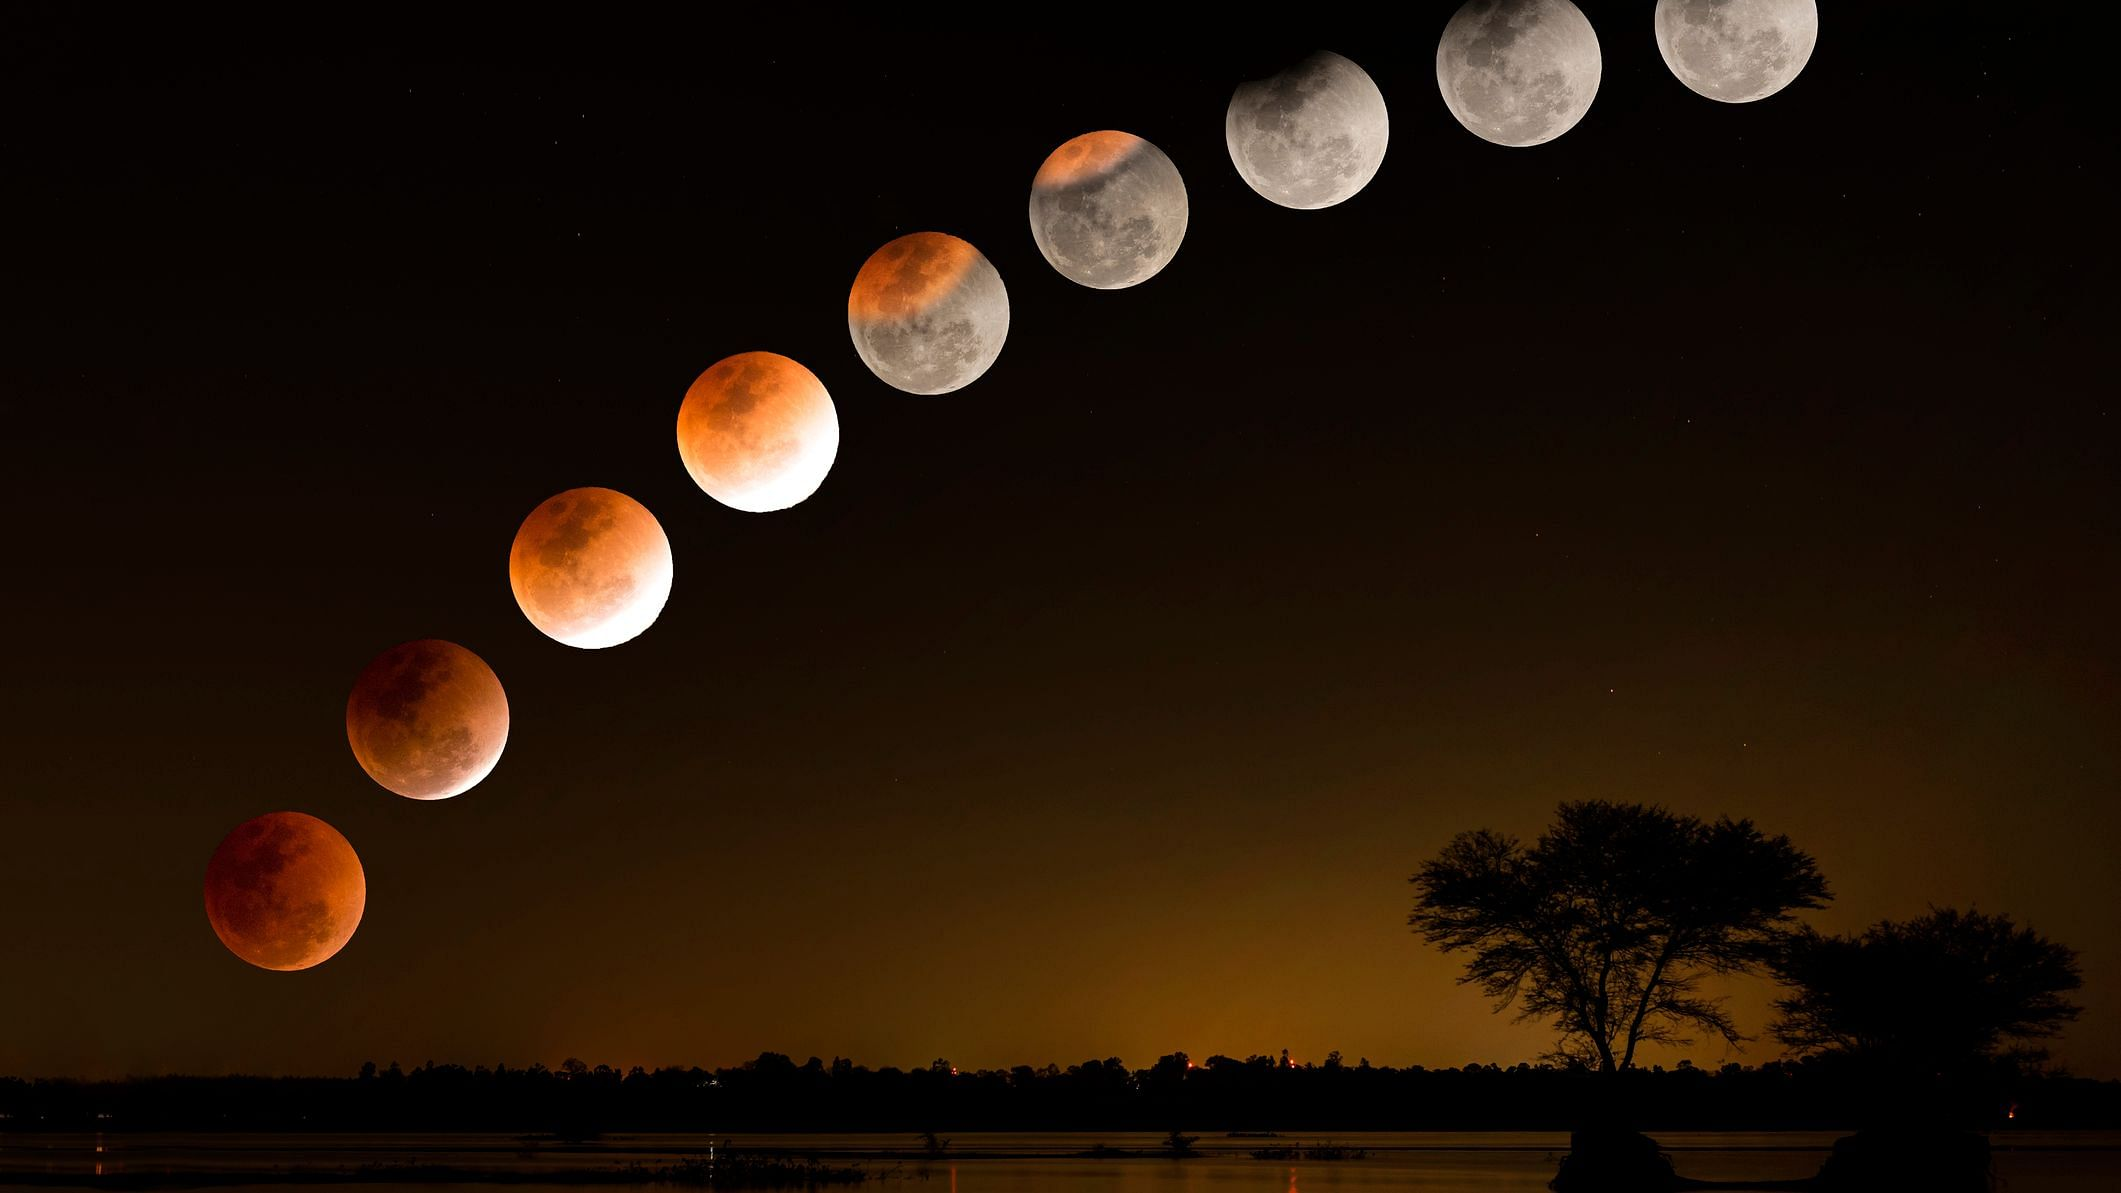 Chandra Grahan 2020 Second Lunar Eclipse Of The Year To Be Held In ...